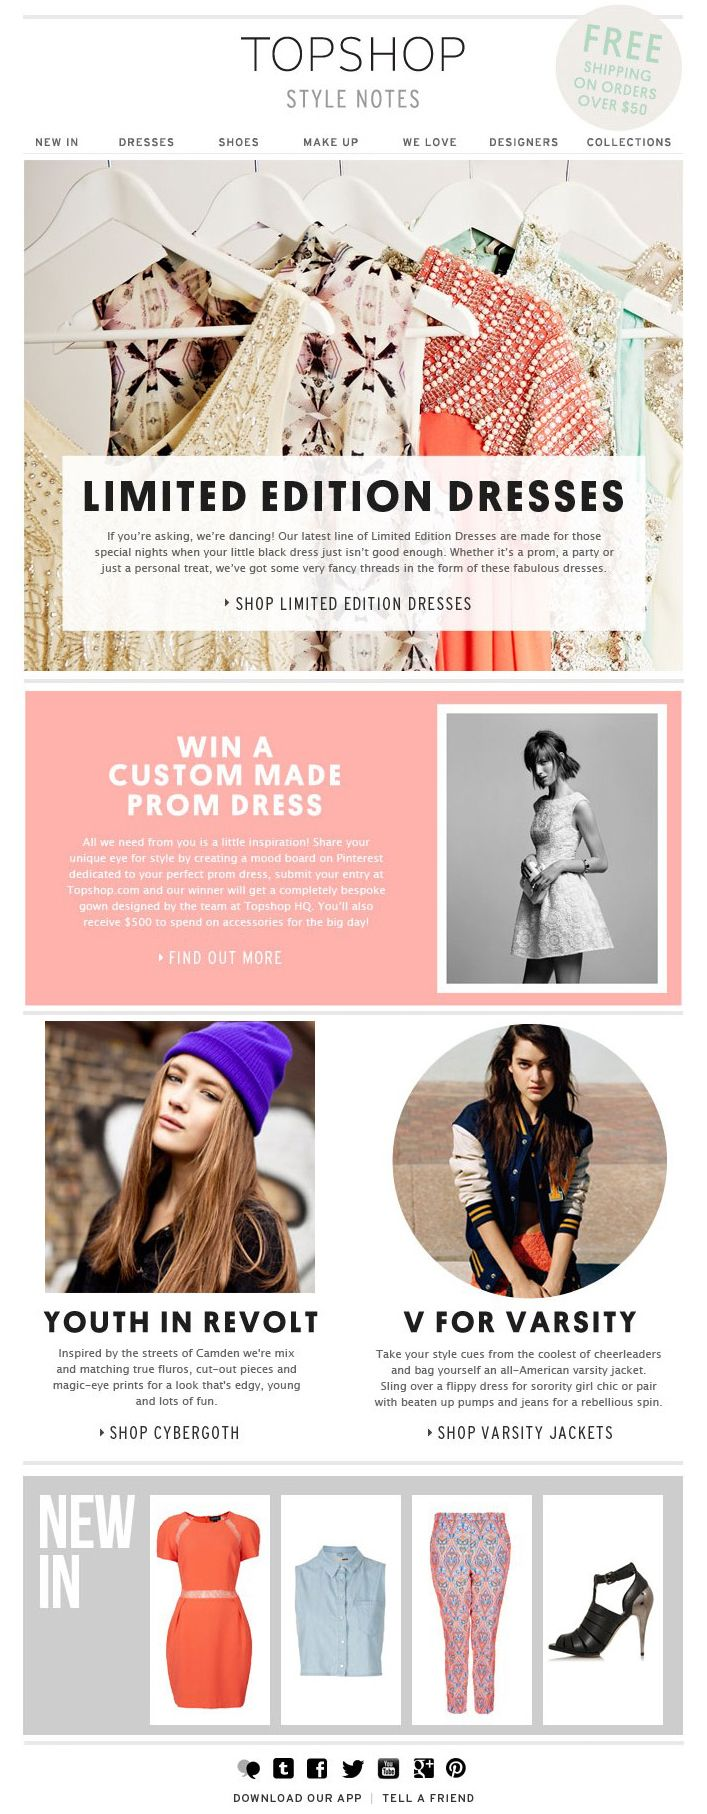 I love this Top Shop newsletter because of it's simplistic style. It uses hierarchy because even though there are a few different topics and sections, there is still a main focus on the title and feature (limited edition dresses) The colors, shapes, fonts, all add to the style of the company